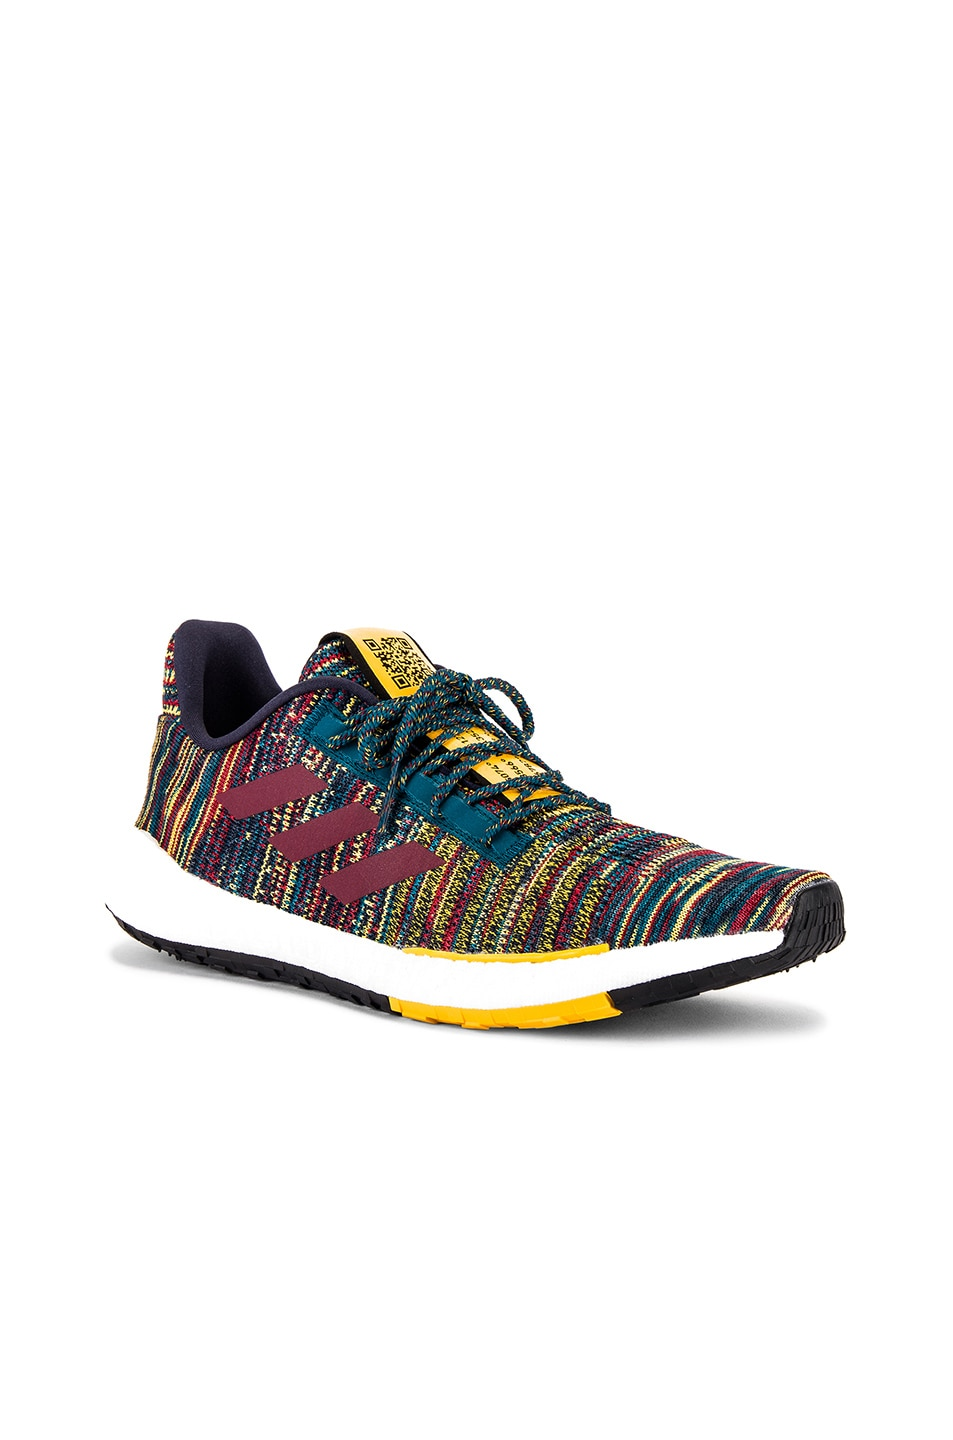 Image 2 of adidas by MISSONI Pulseboost HD in Tech Mineral & Collegiate Burgundy & Active Gold